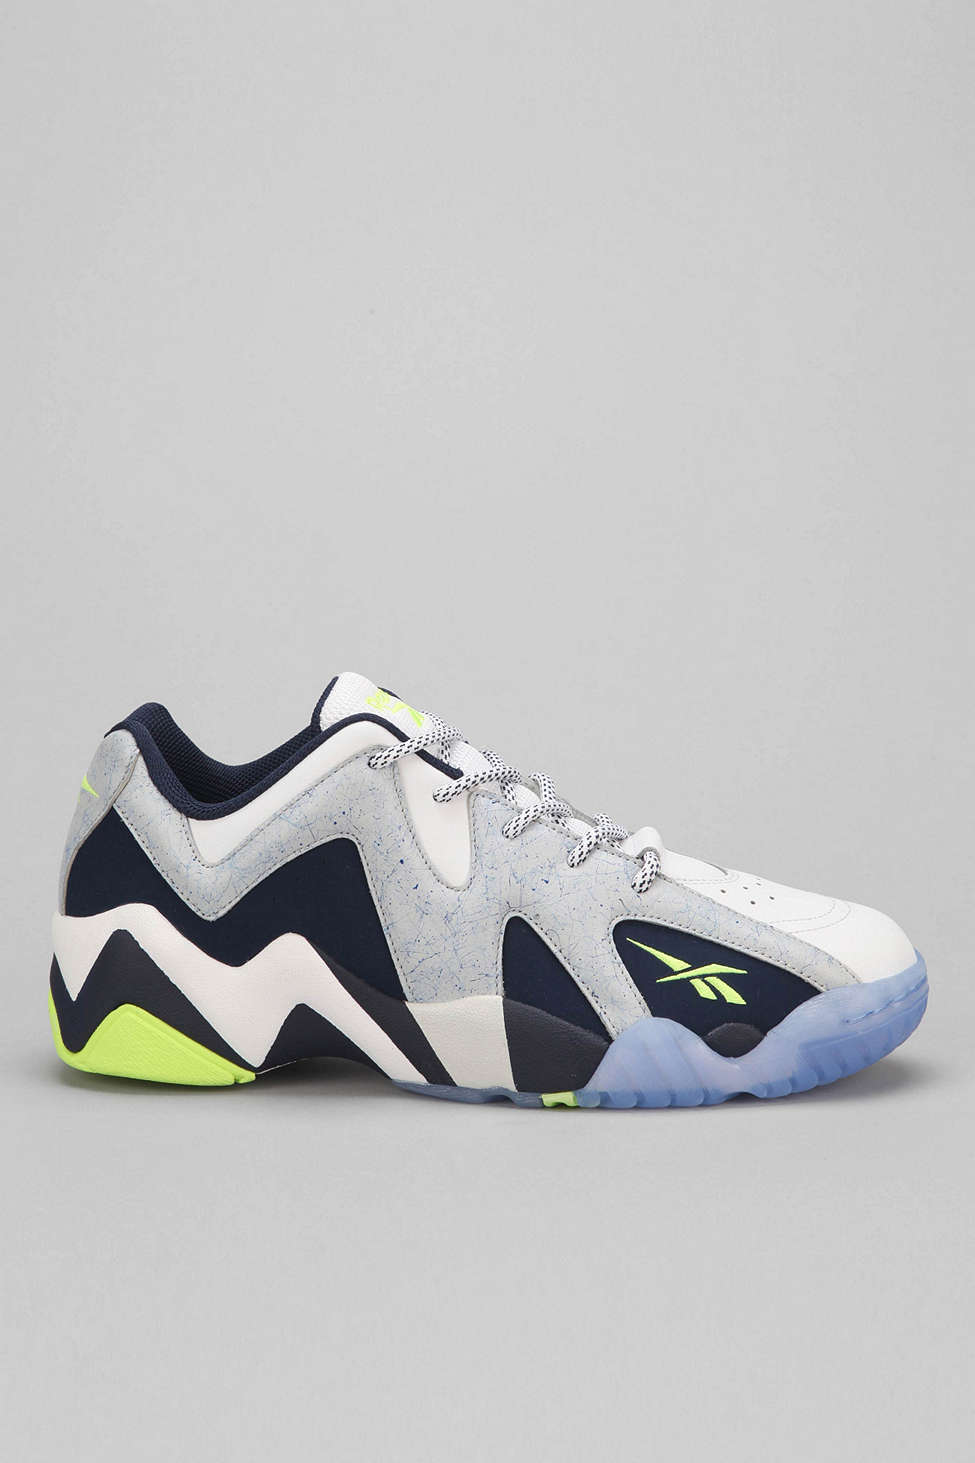 Reebok Kamikaze 2 Low-Top Sneaker 1